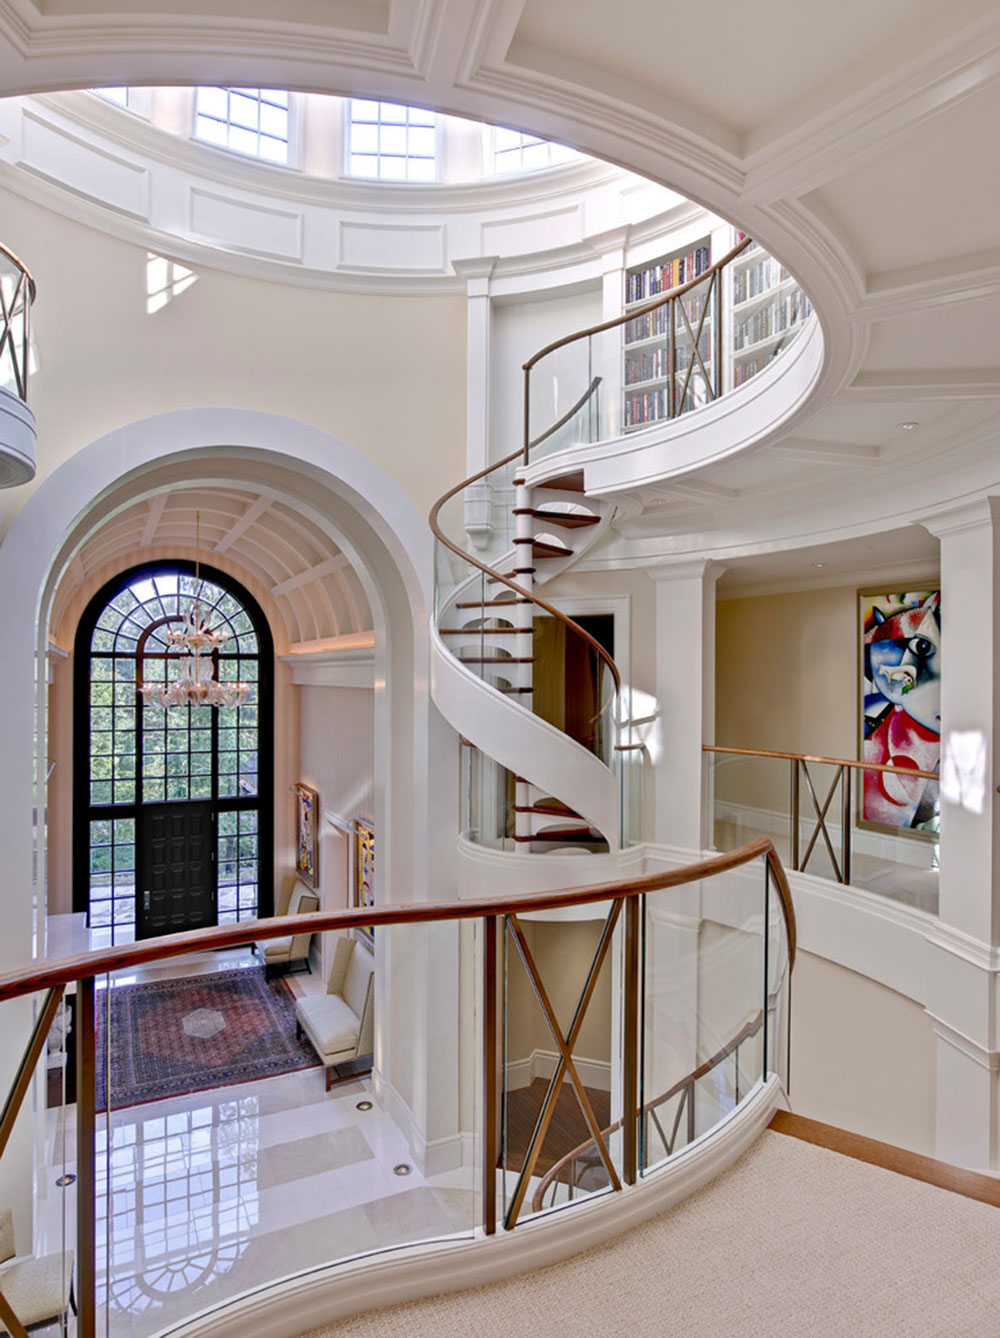 Interesting Tips for Creating a Welcoming House2 Interesting tips for creating a welcoming house